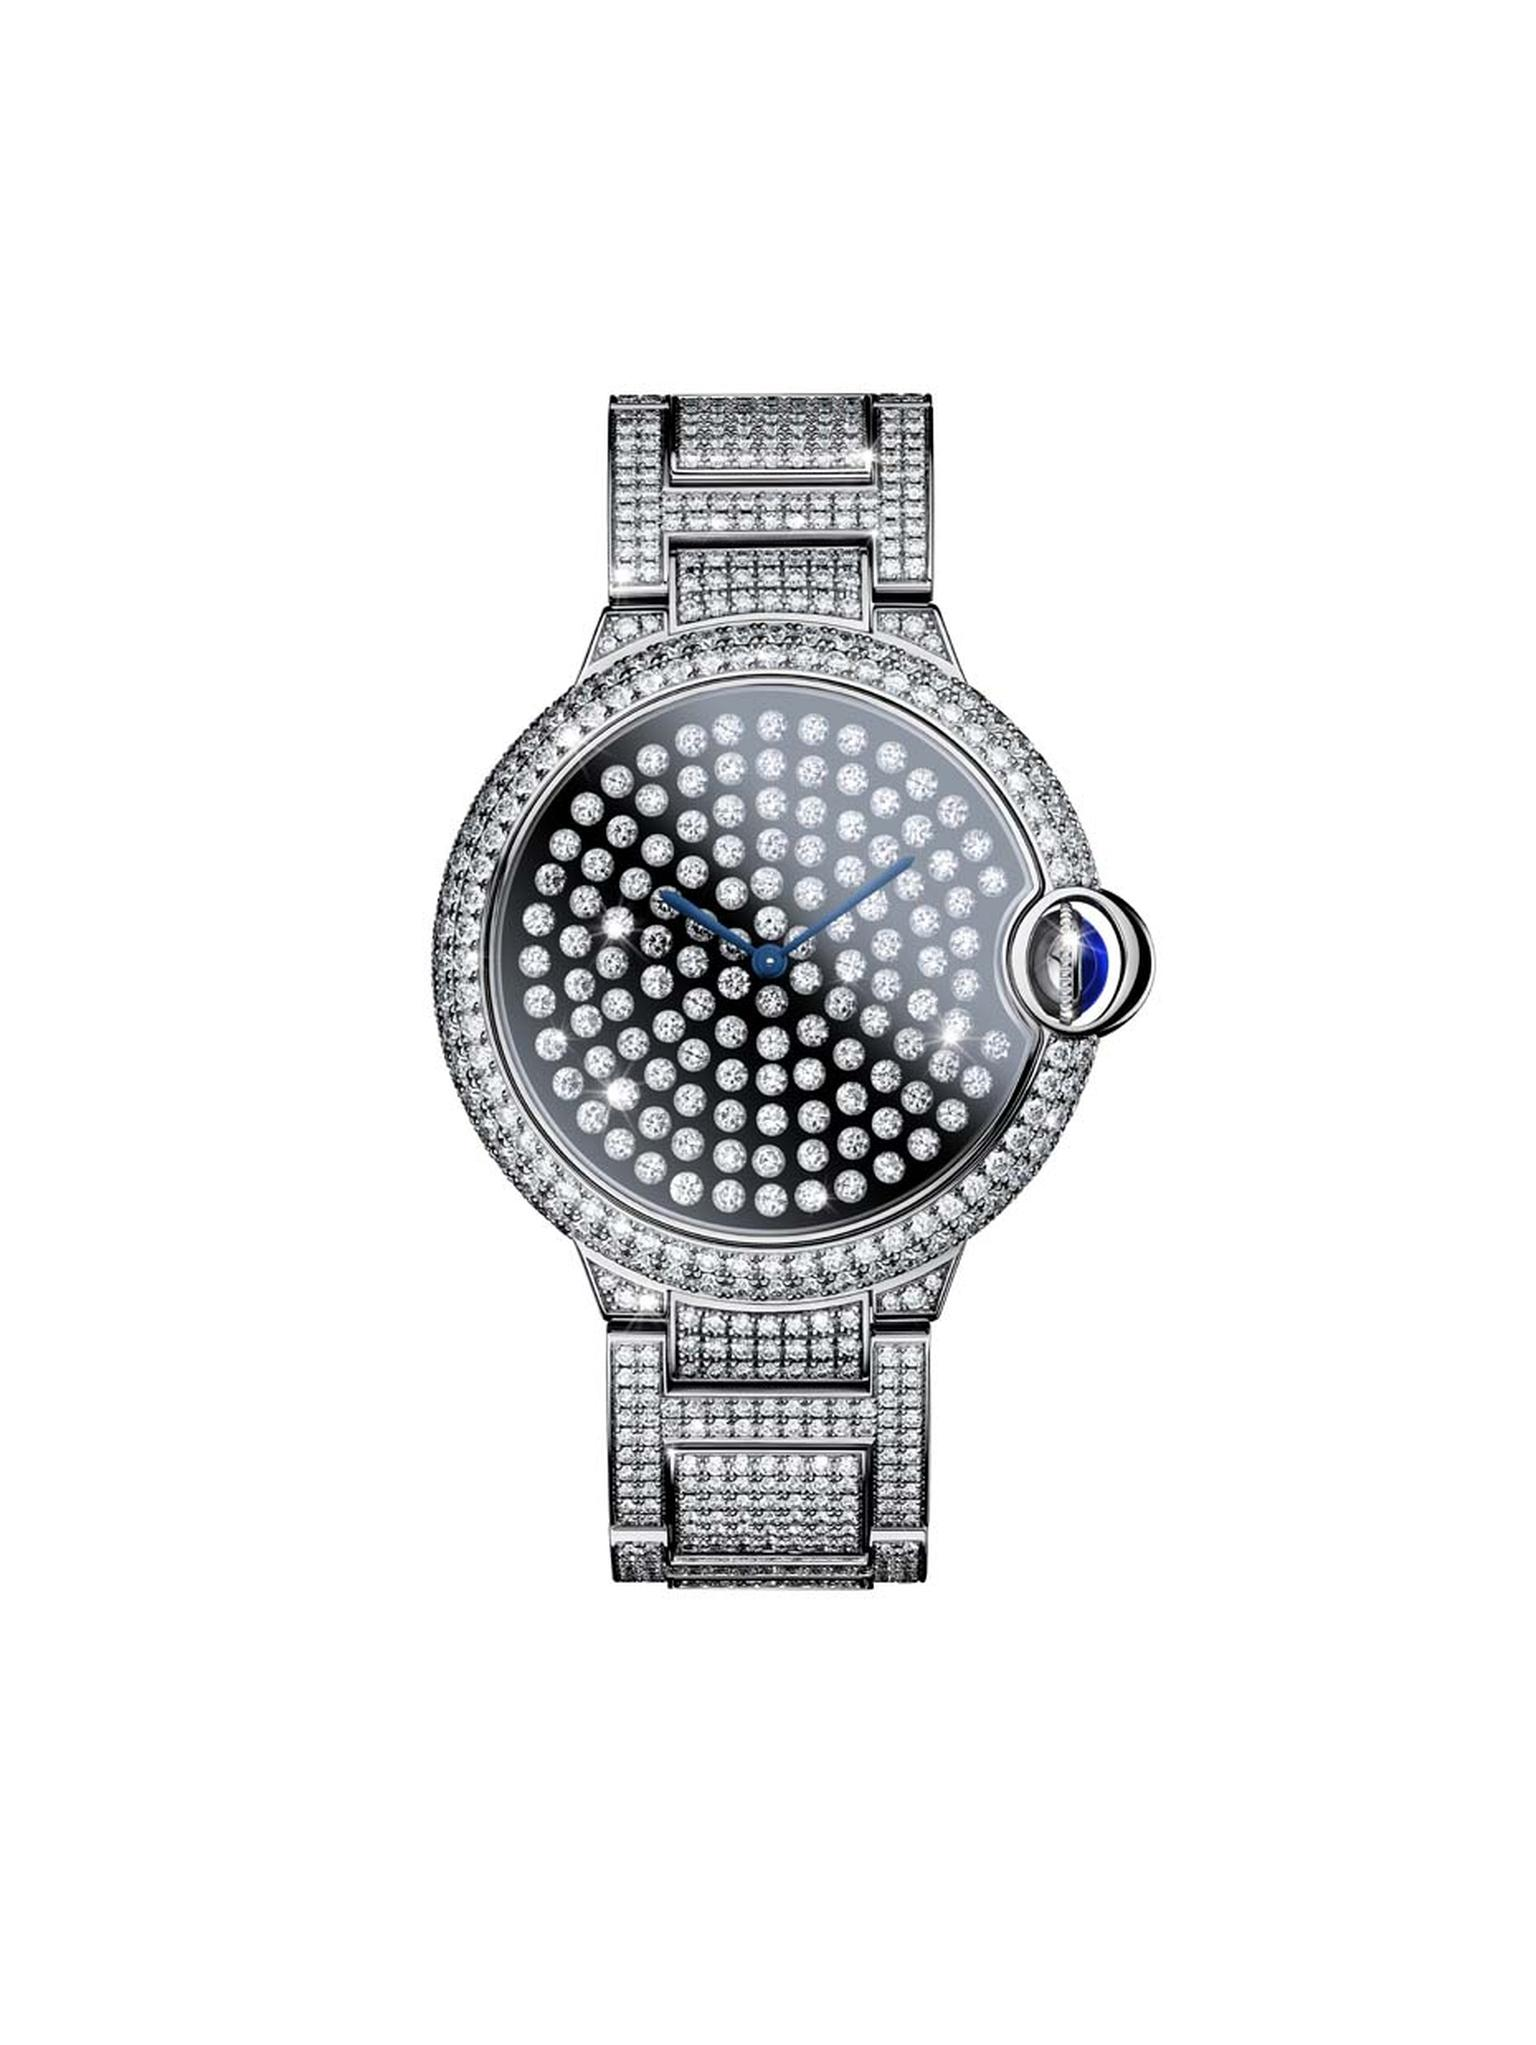 Cartier watches has launched the new Ballon Bleu Vibrating Setting, which looks as though it has been dipped in a constellation of sparkling diamonds that don't just twinkle, they tremble in response to your movements.